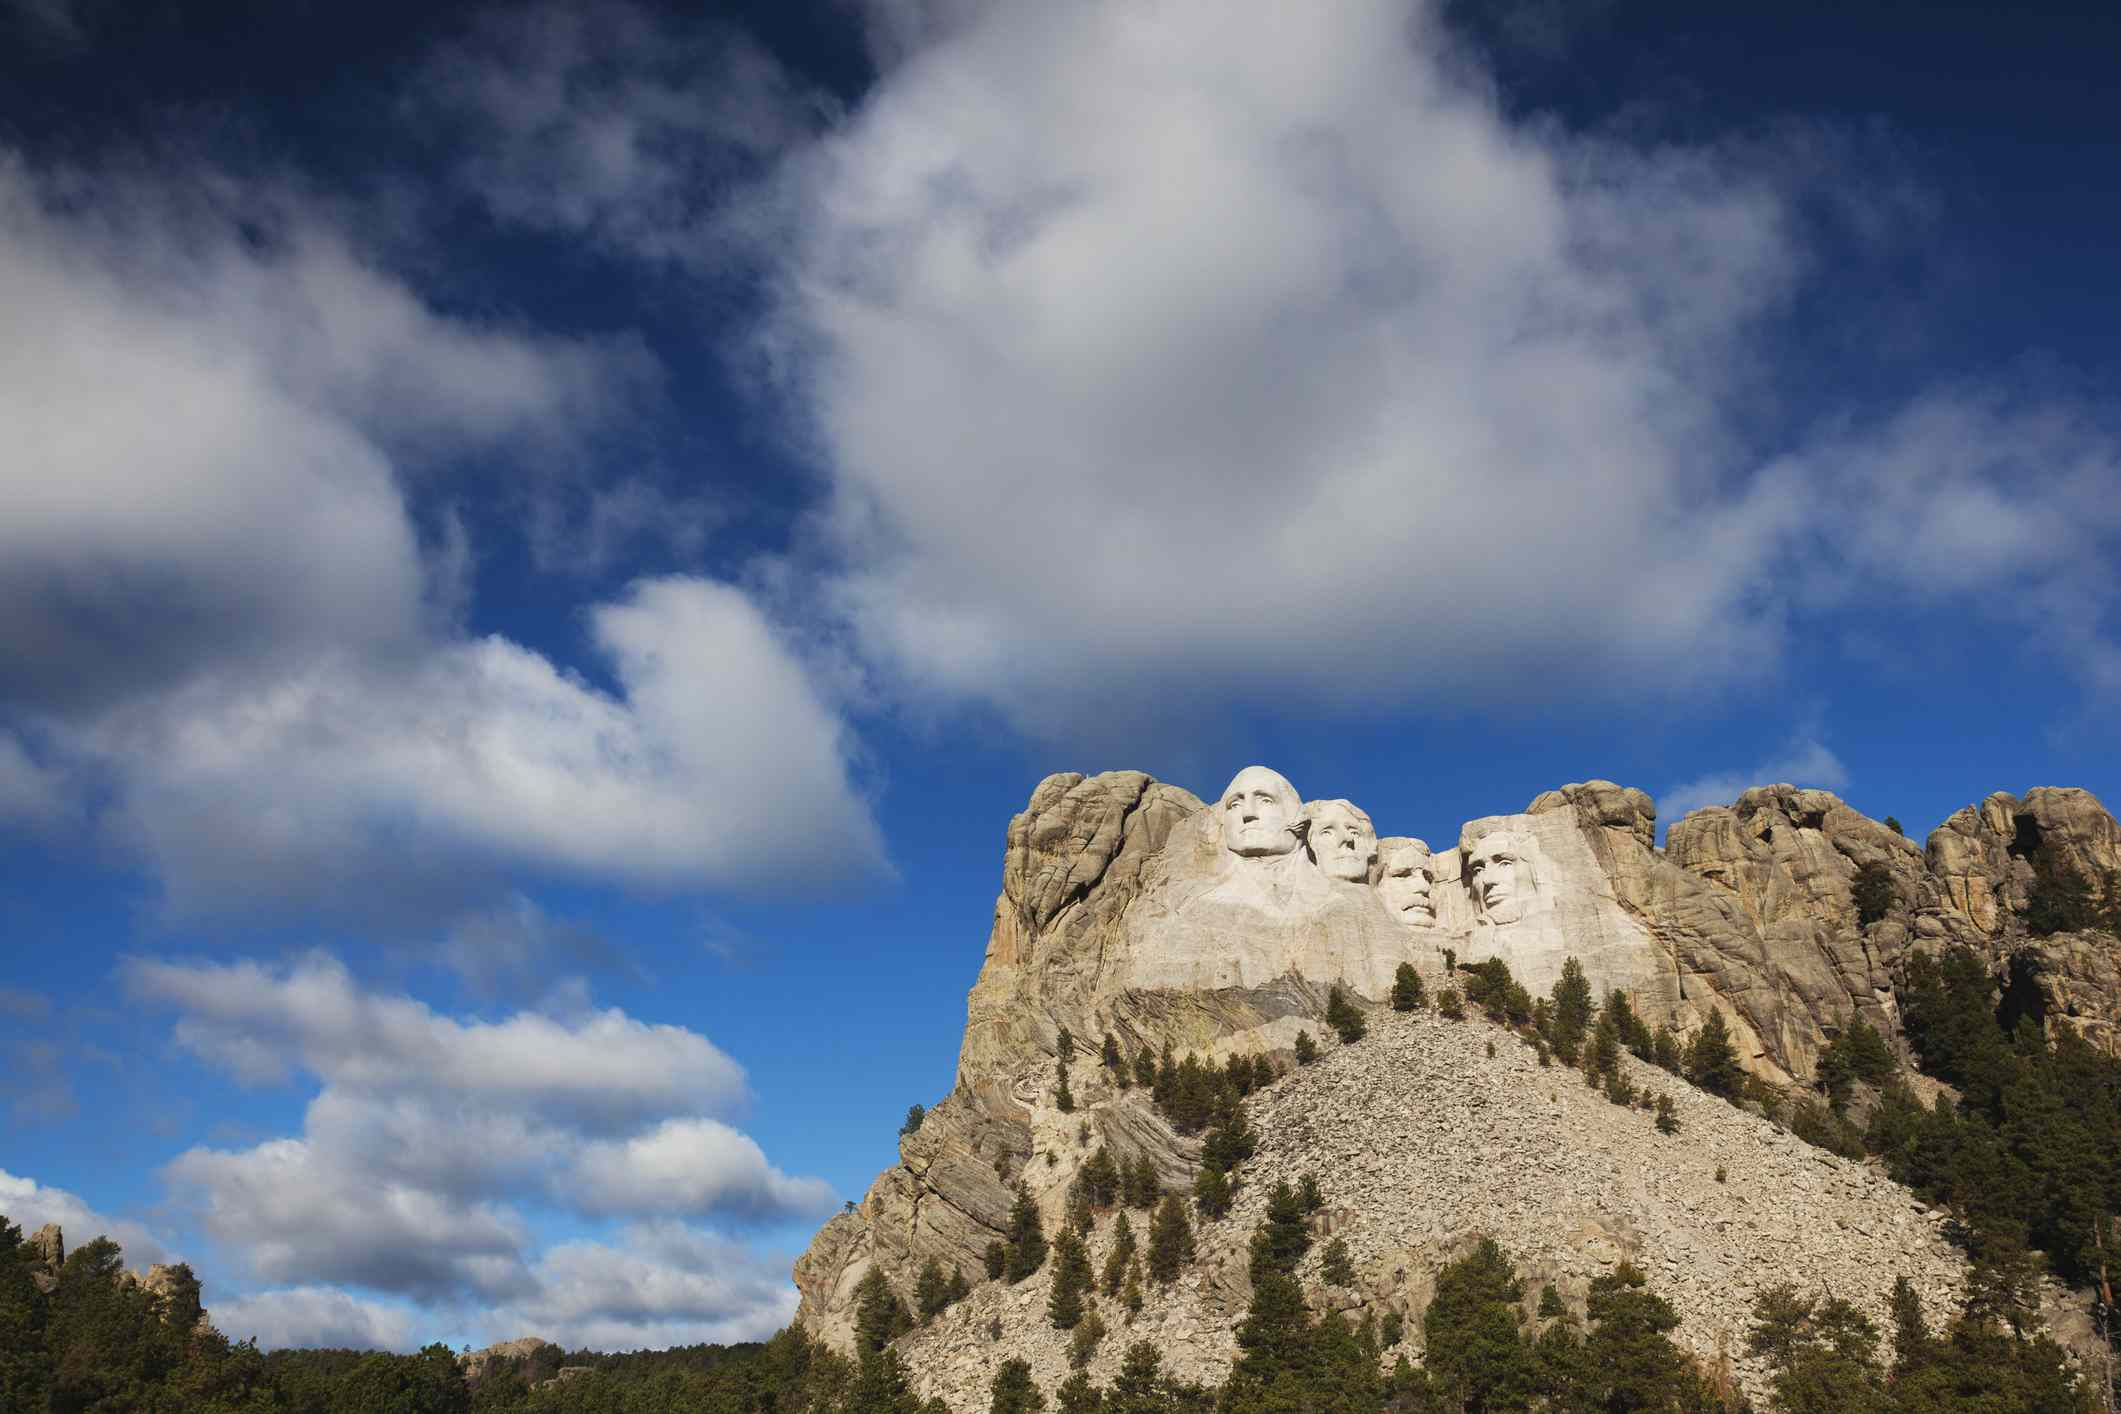 Mount Rushmore National Memorial in the Black Hills National Forest